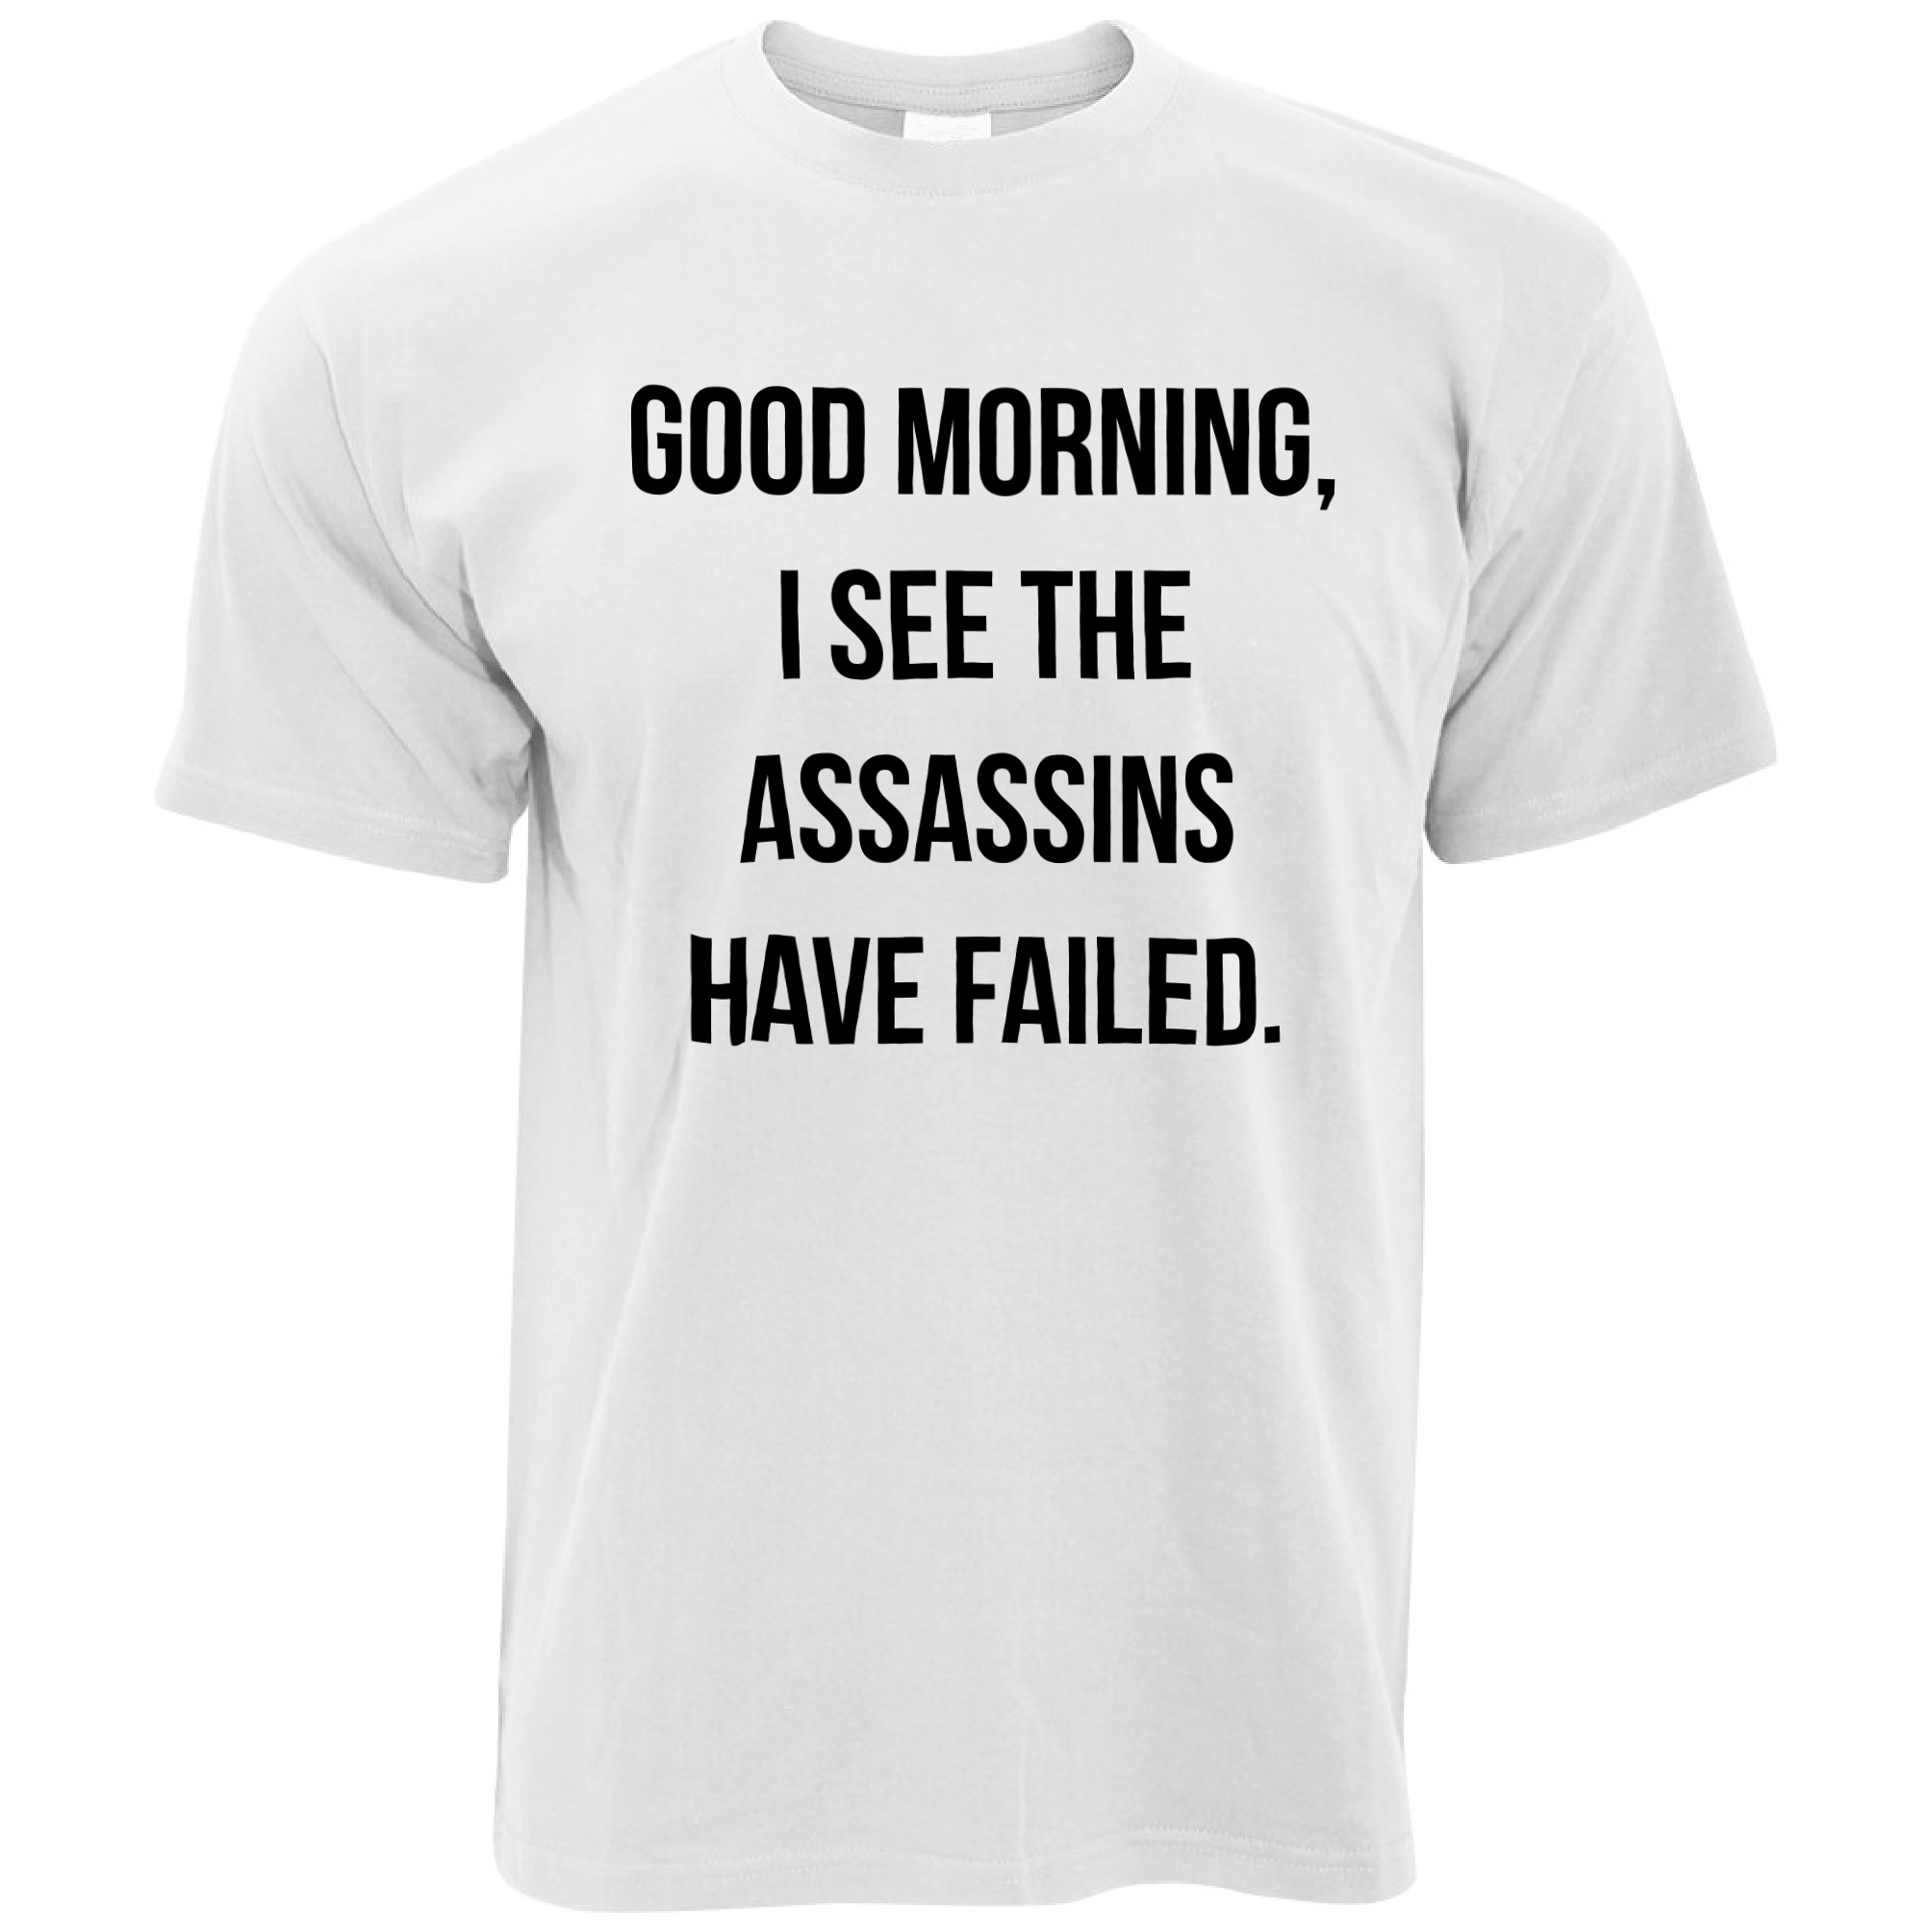 Funny Mens T-Shirt I See The Assassins Have Failed Joke Cool Pun Silly 2018 New Arrival T-Shirt